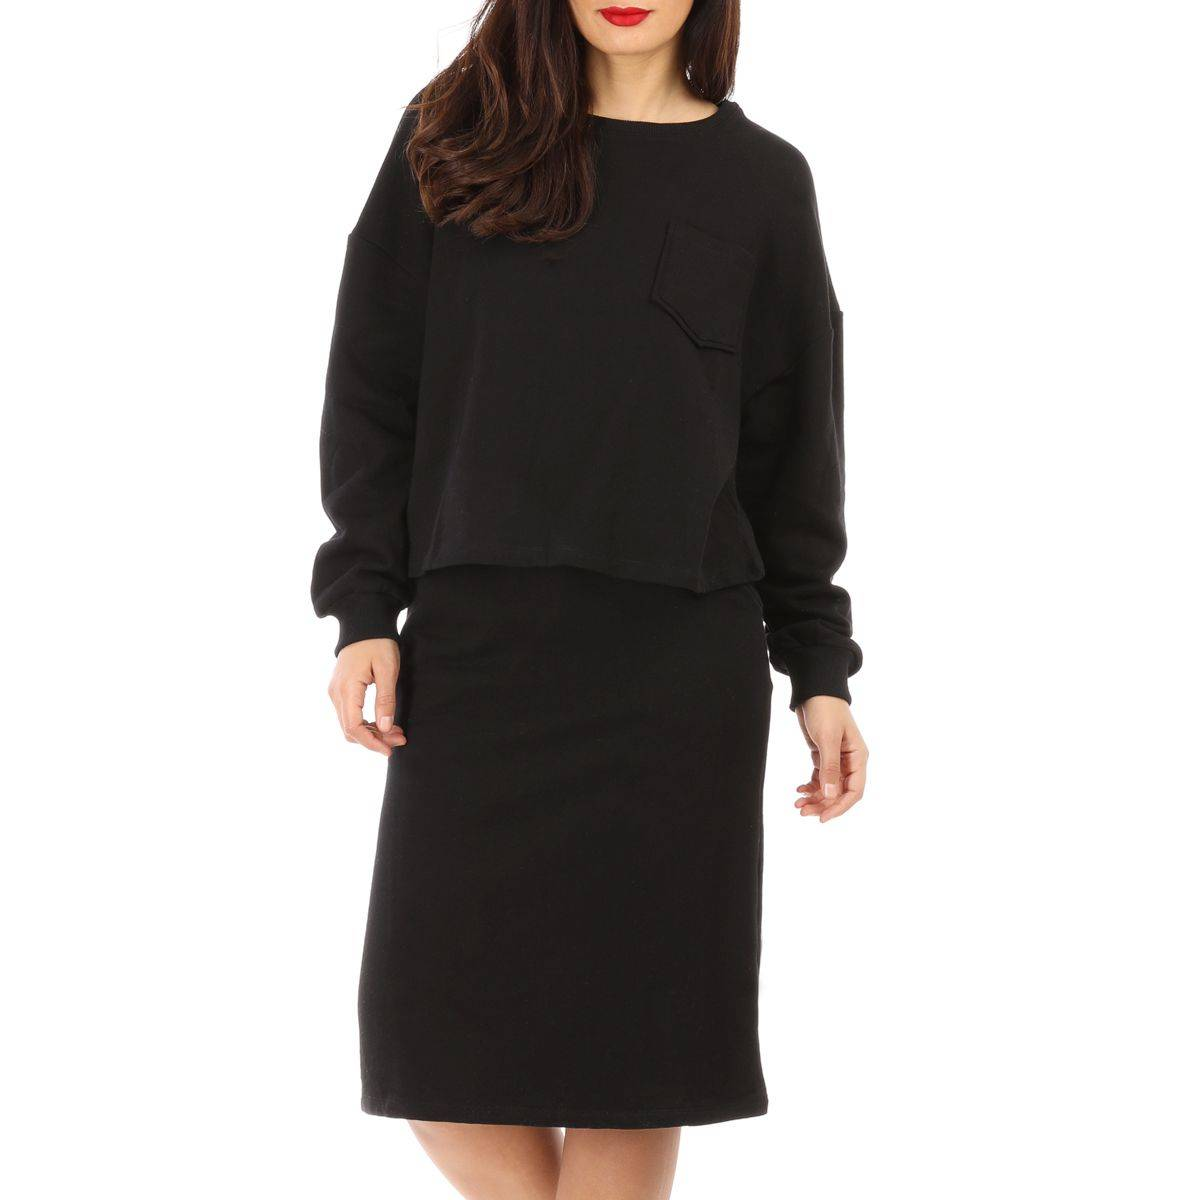 La Modeuse Ensemble jupe sweat noir